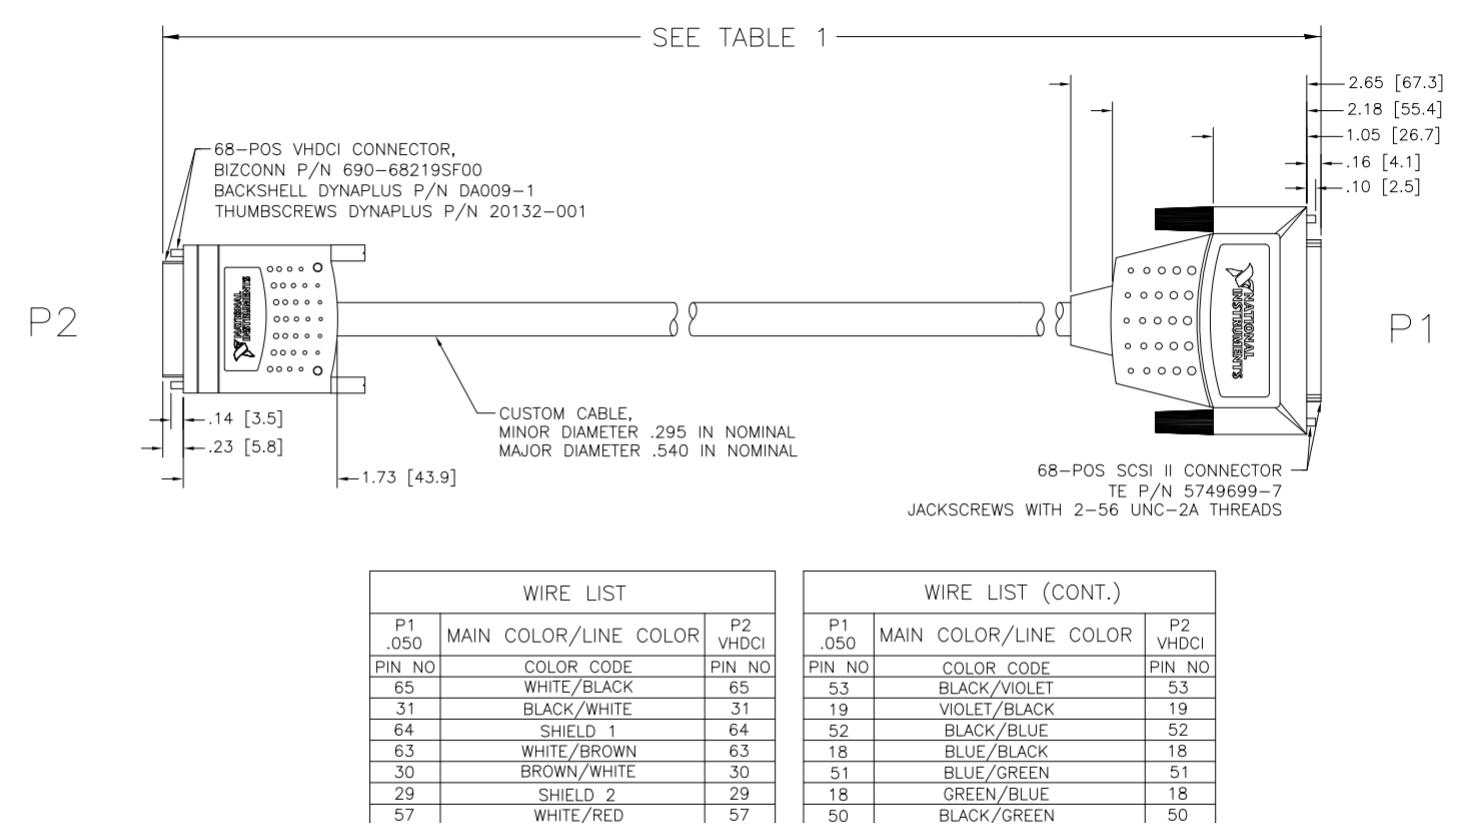 Scsi Connector Wiring Diagram Online Usb To Ieee 1284 Schematic Data Female Molex Connectors